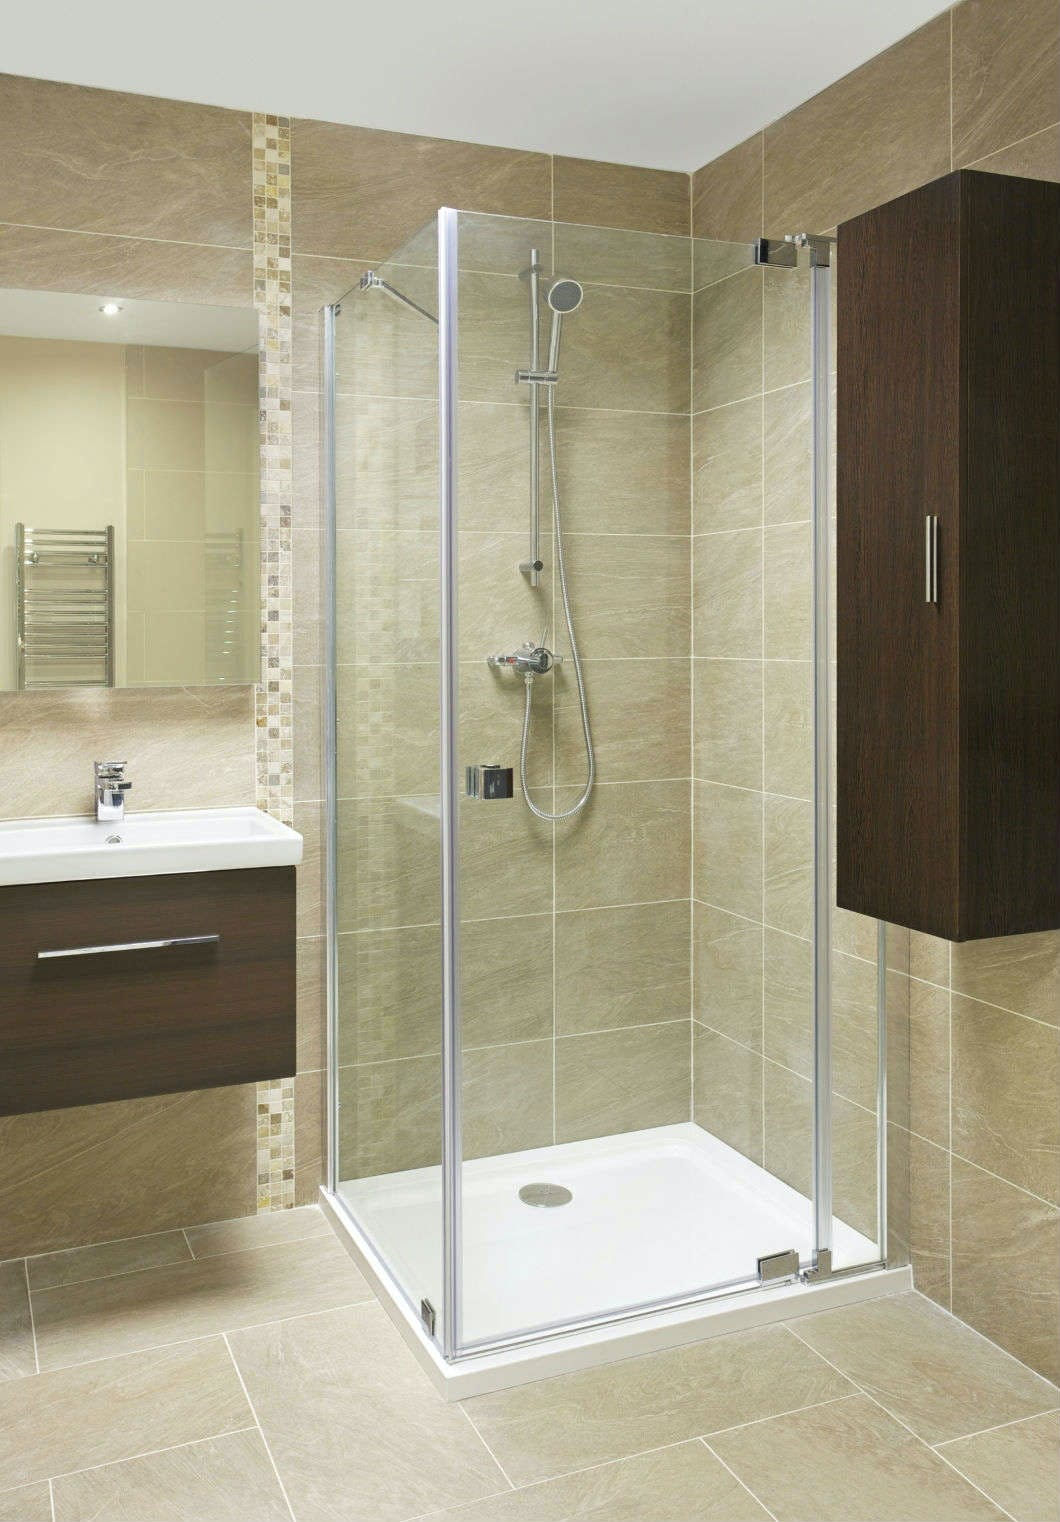 At More Bathrooms you'll discover a stunning range of corner shower enclosures, quadrant shower enclosures and square shower enclosures.